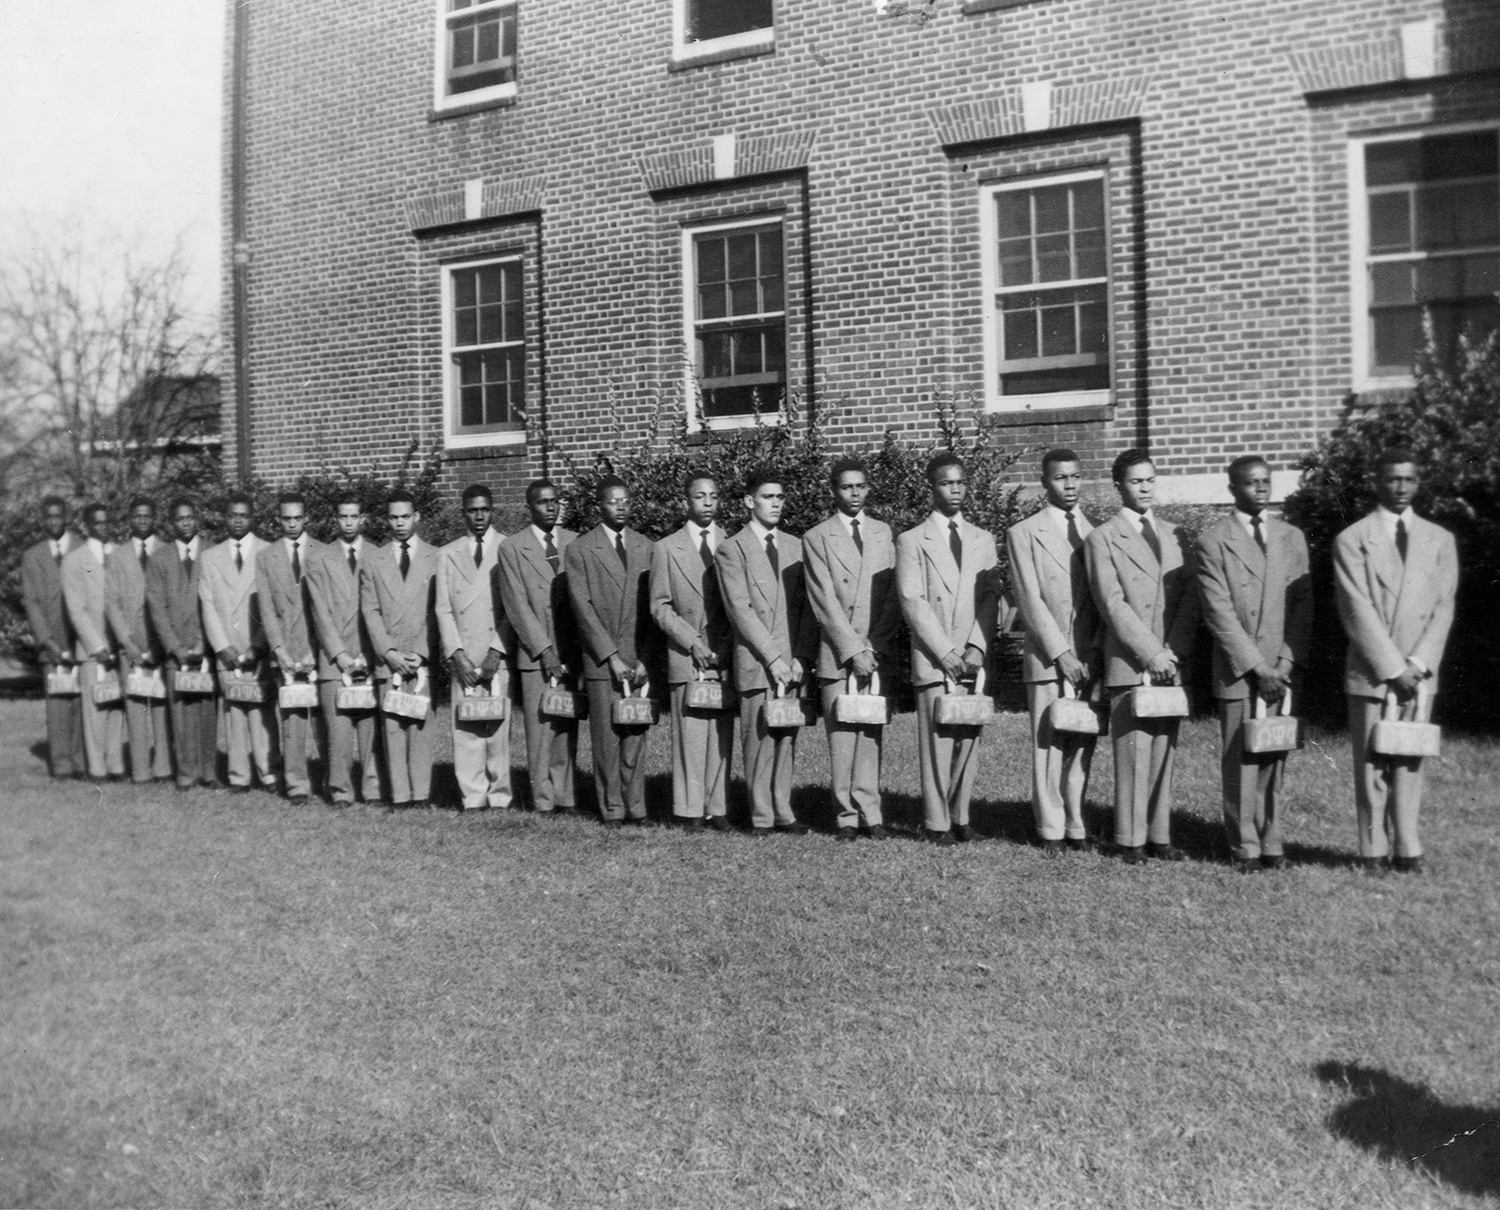 Omega Psi Phi pledges from photo collection of Eddie Palmer. No information accompanied the picture. We are assuming it was taken at Virginia State College (later University) in the late 1940s or mid 1950s. Eddie may or may not be in the photo, among the out-of-focus men at the far left. (Copy photo from original) We welcome help from anyone with information about this image.